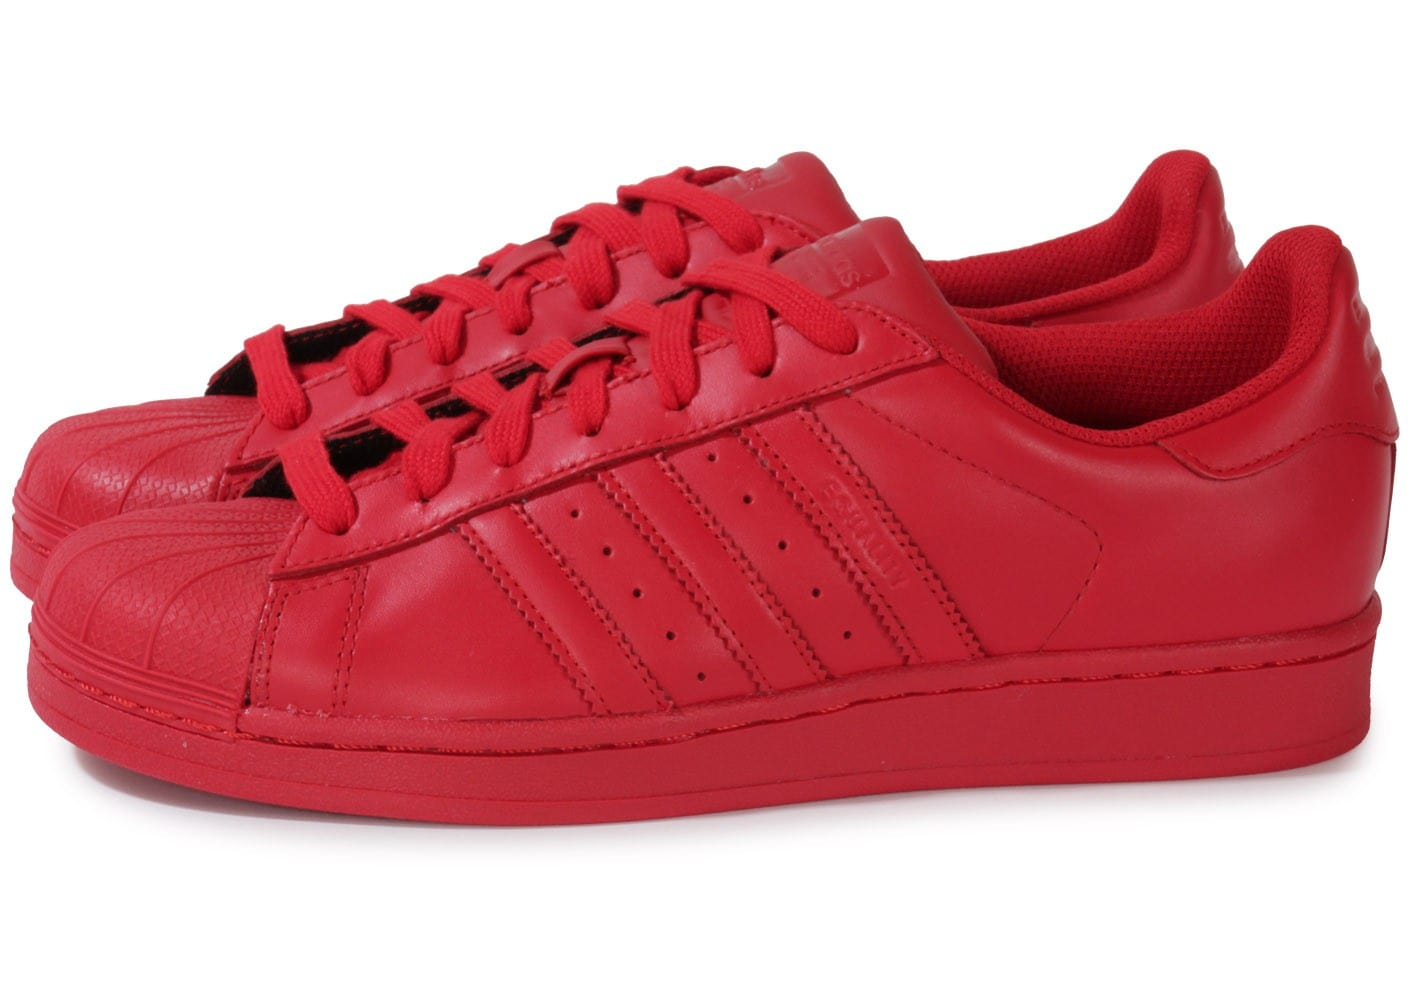 adidas superstar supercolor rouge chaussures homme chausport. Black Bedroom Furniture Sets. Home Design Ideas